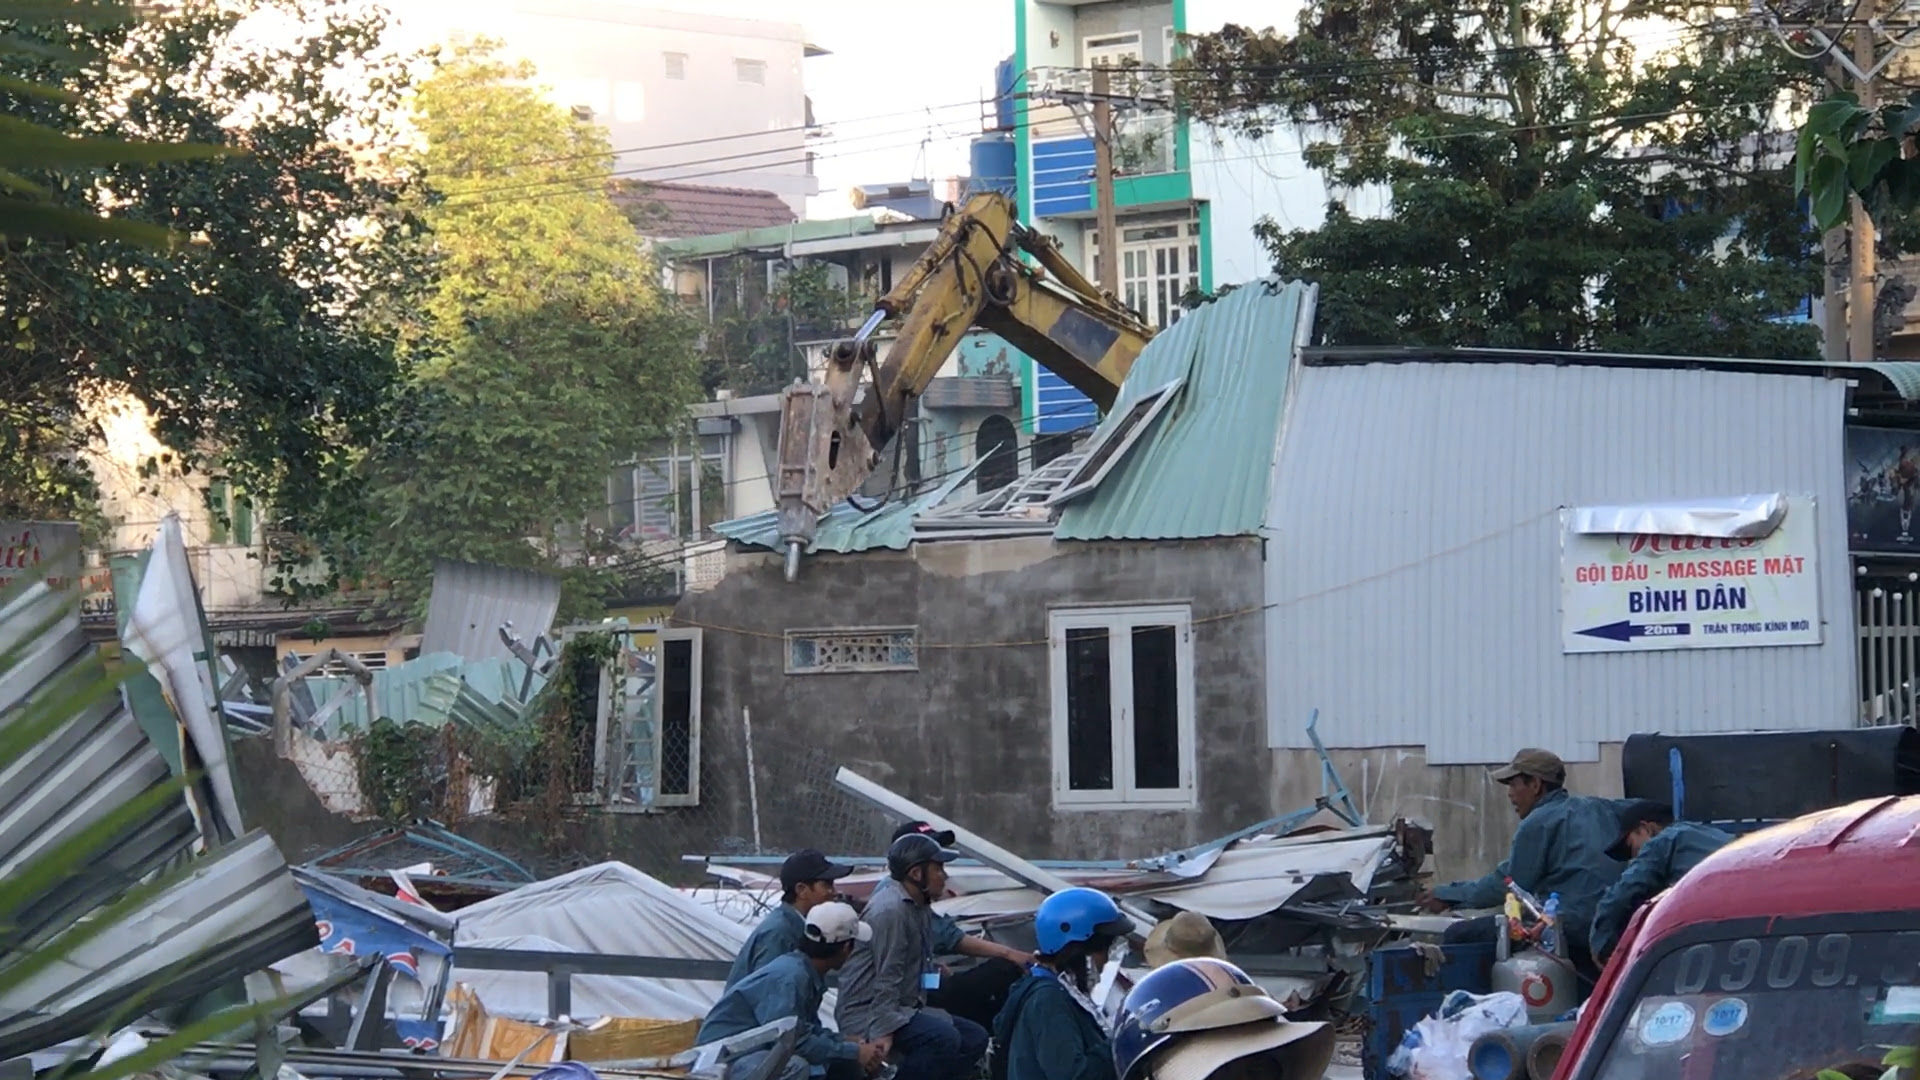 https://www.rfa.org/vietnamese/news/blog/lochung-garden-forced-eviction-why-state-media-says-nothing-01092019064913.html/LOC_HUNG_1.jpg